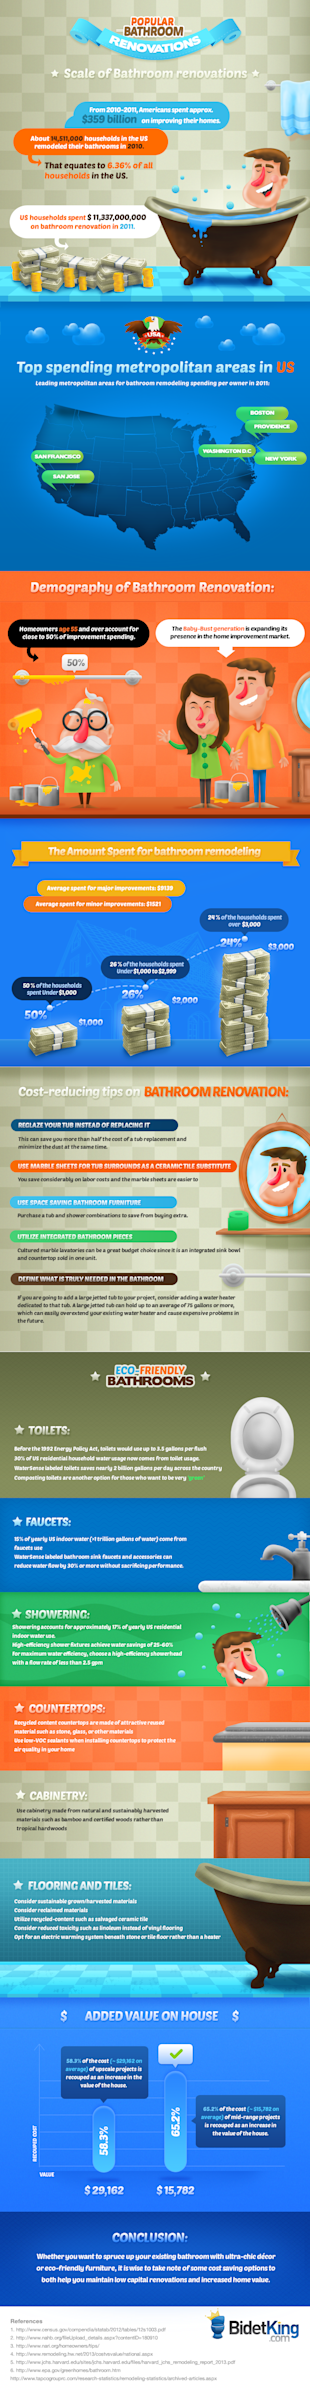 A Peek at How The Bathroom Renovation Has Grown Among U.S. Homeowners  image bathroom renovations infographic